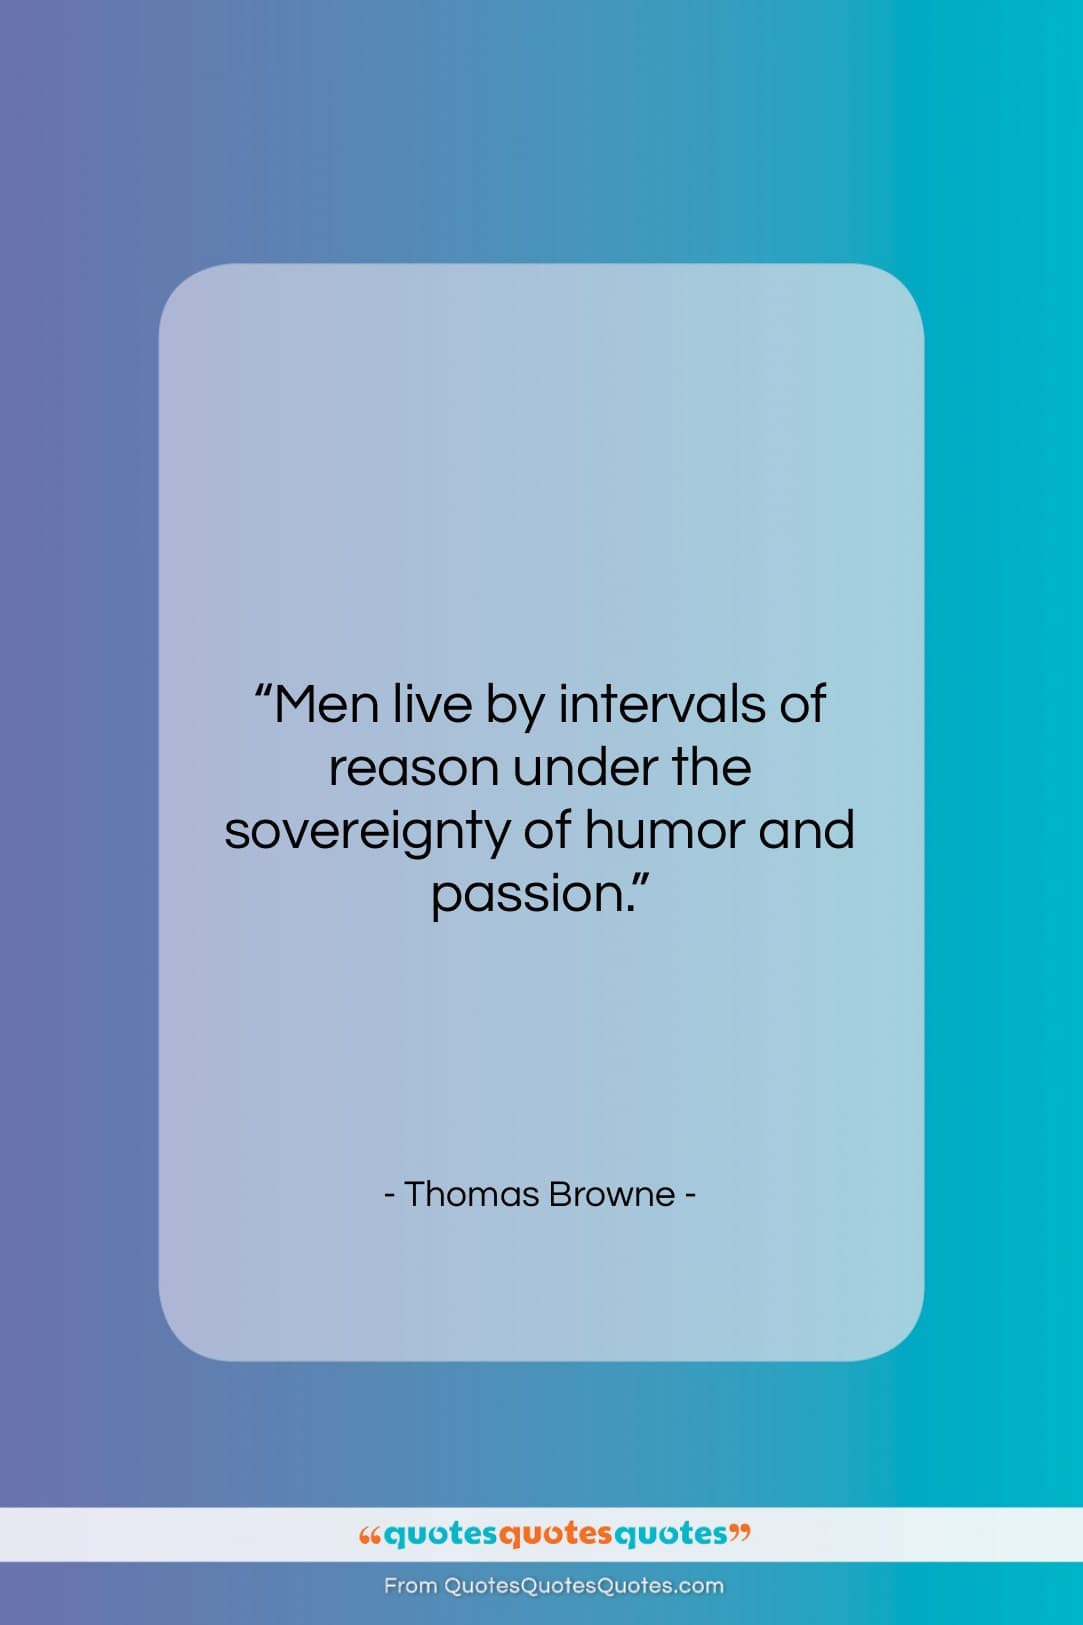 """Thomas Browne quote: """"Men live by intervals of reason under…""""- at QuotesQuotesQuotes.com"""